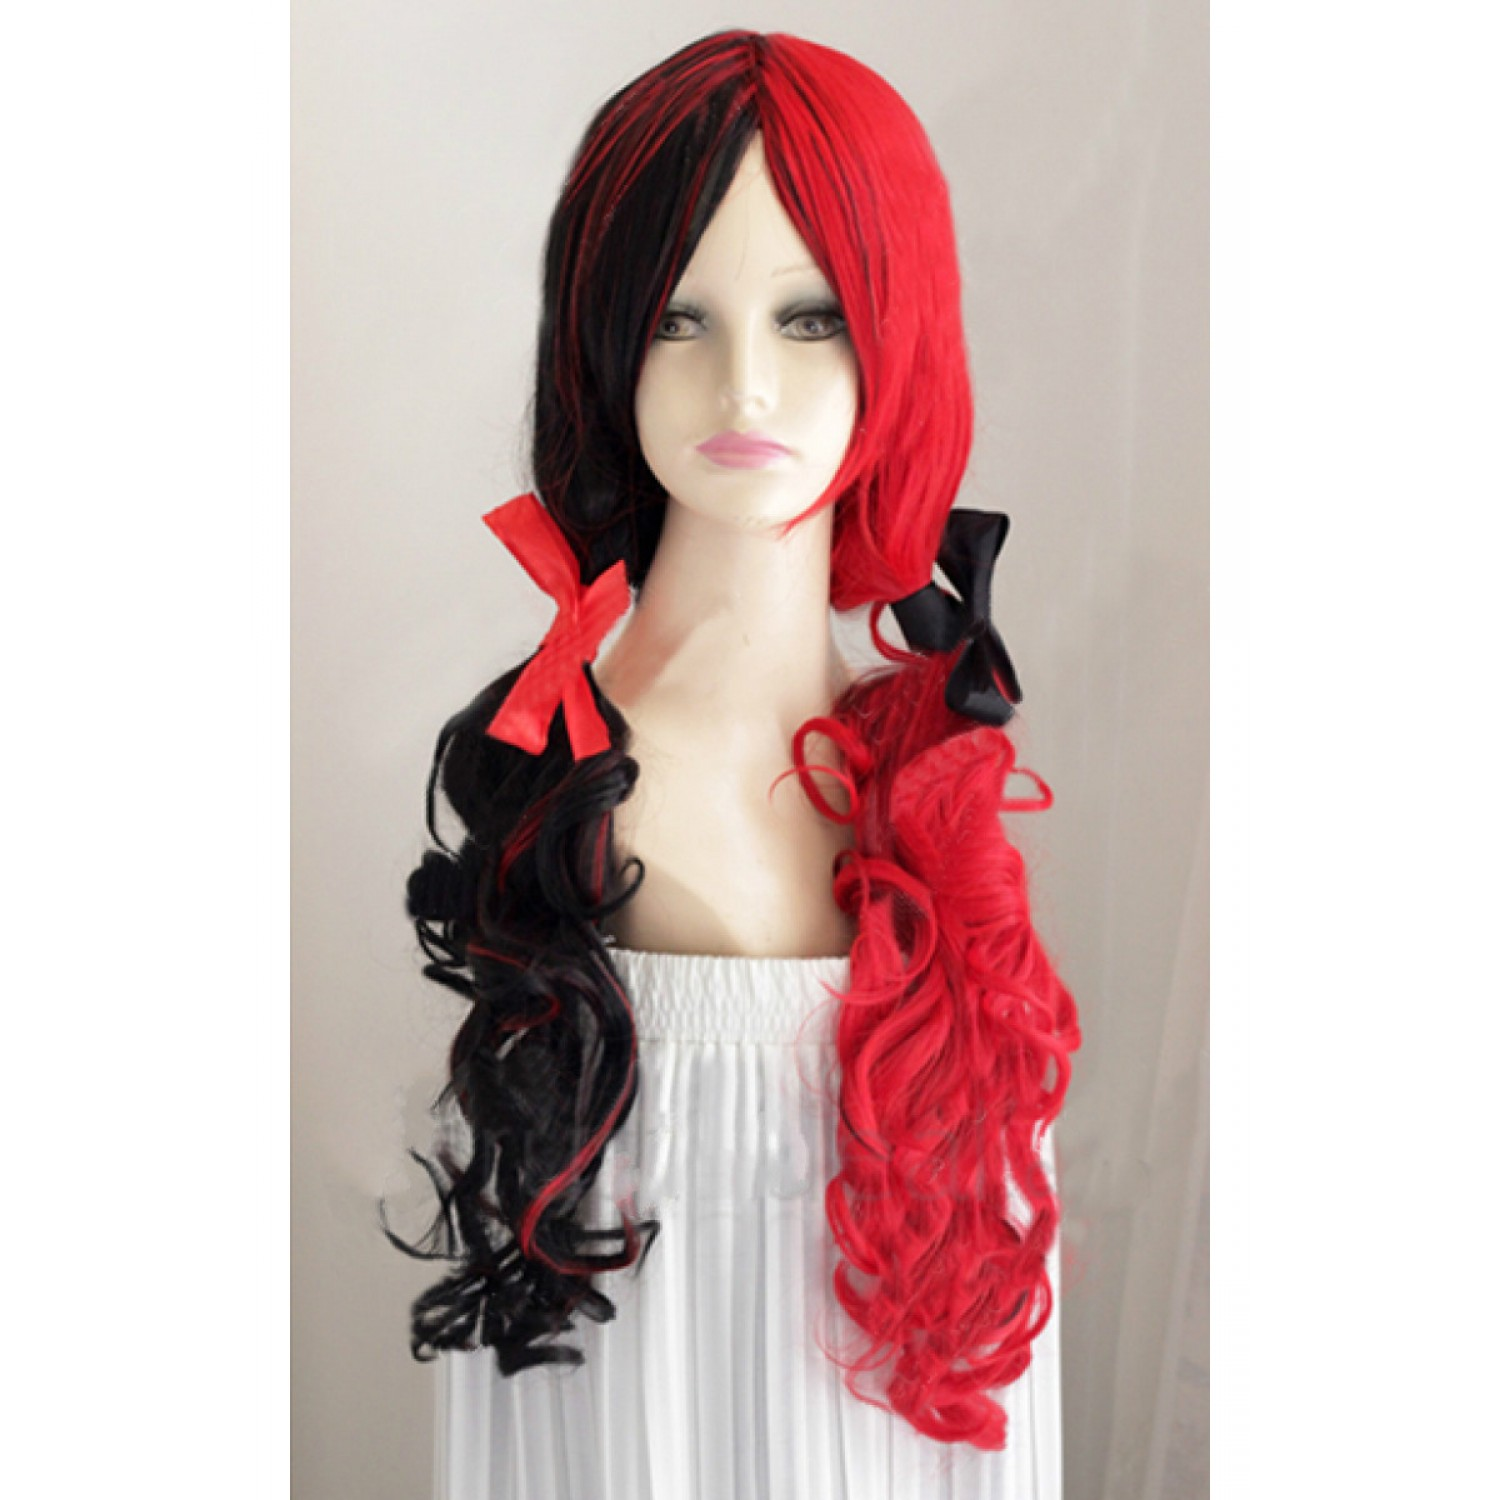 Batman Harley Quinn Wig Red and Black Synthetic Hair Party Wig